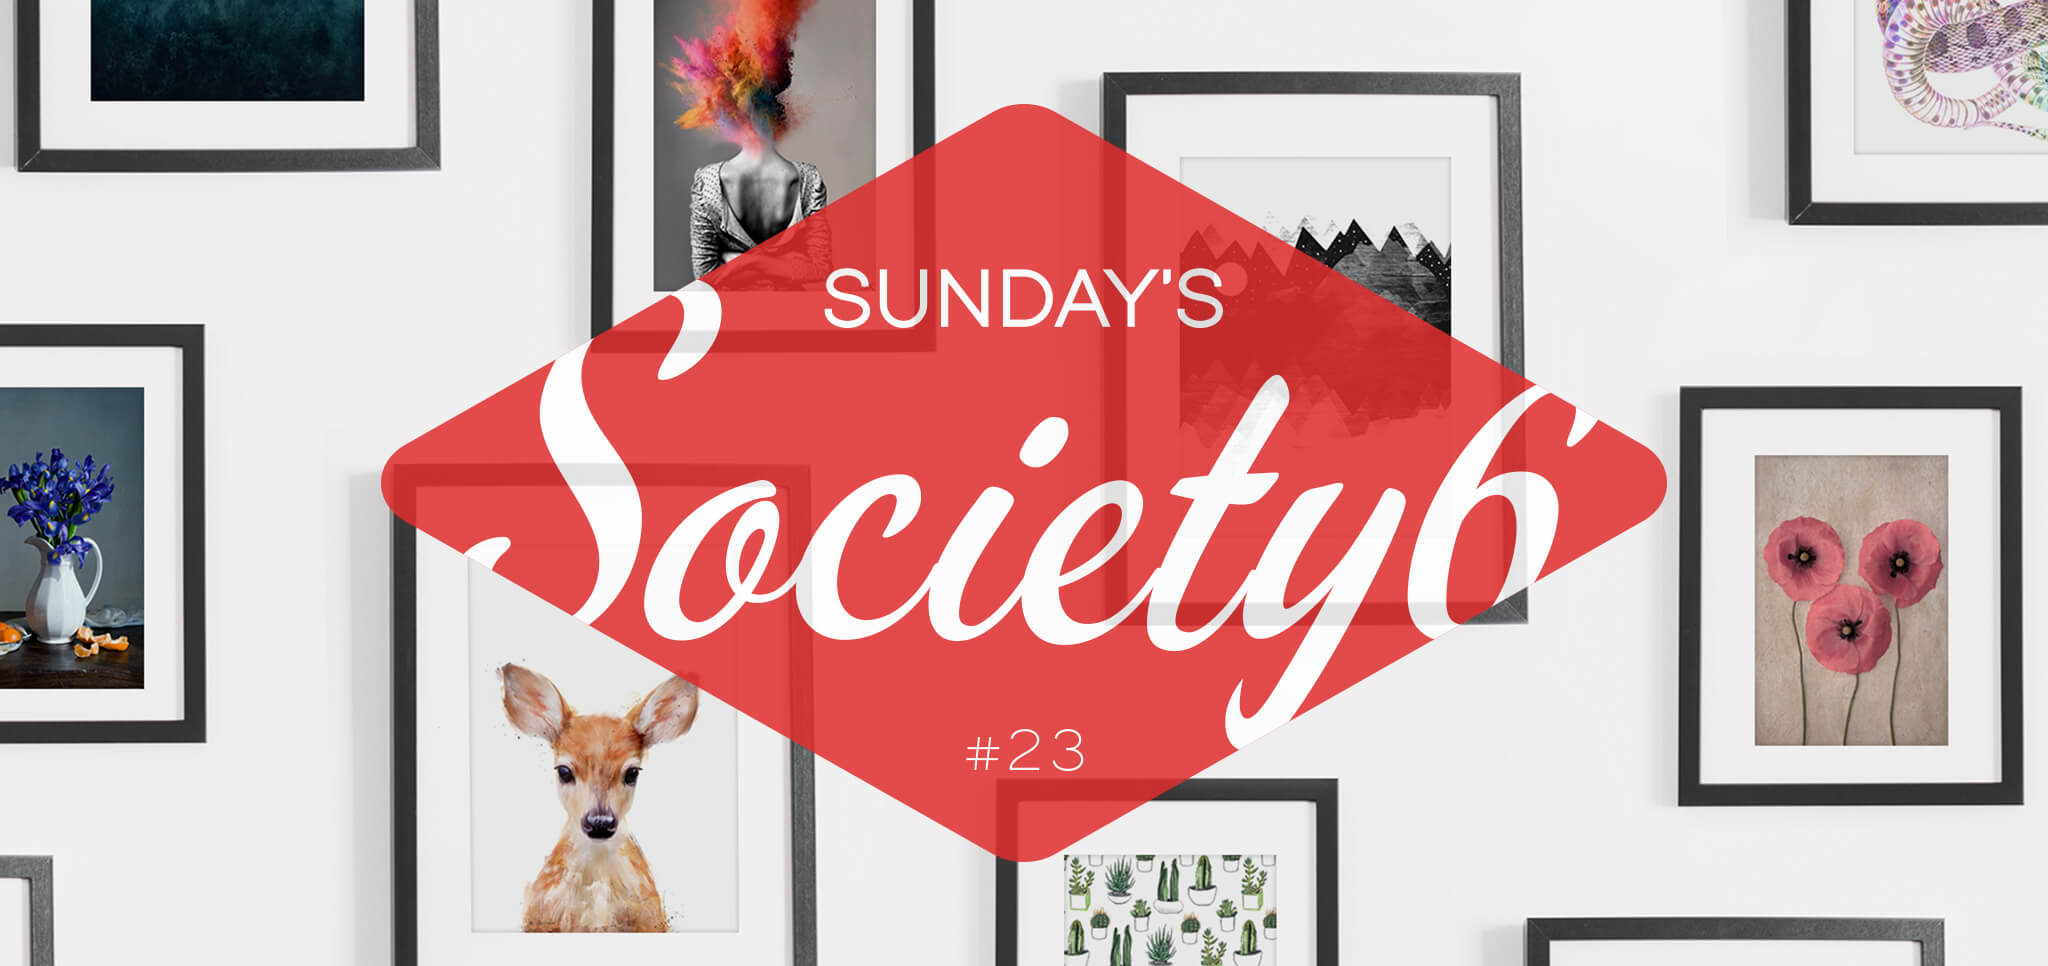 Sunday's Society6